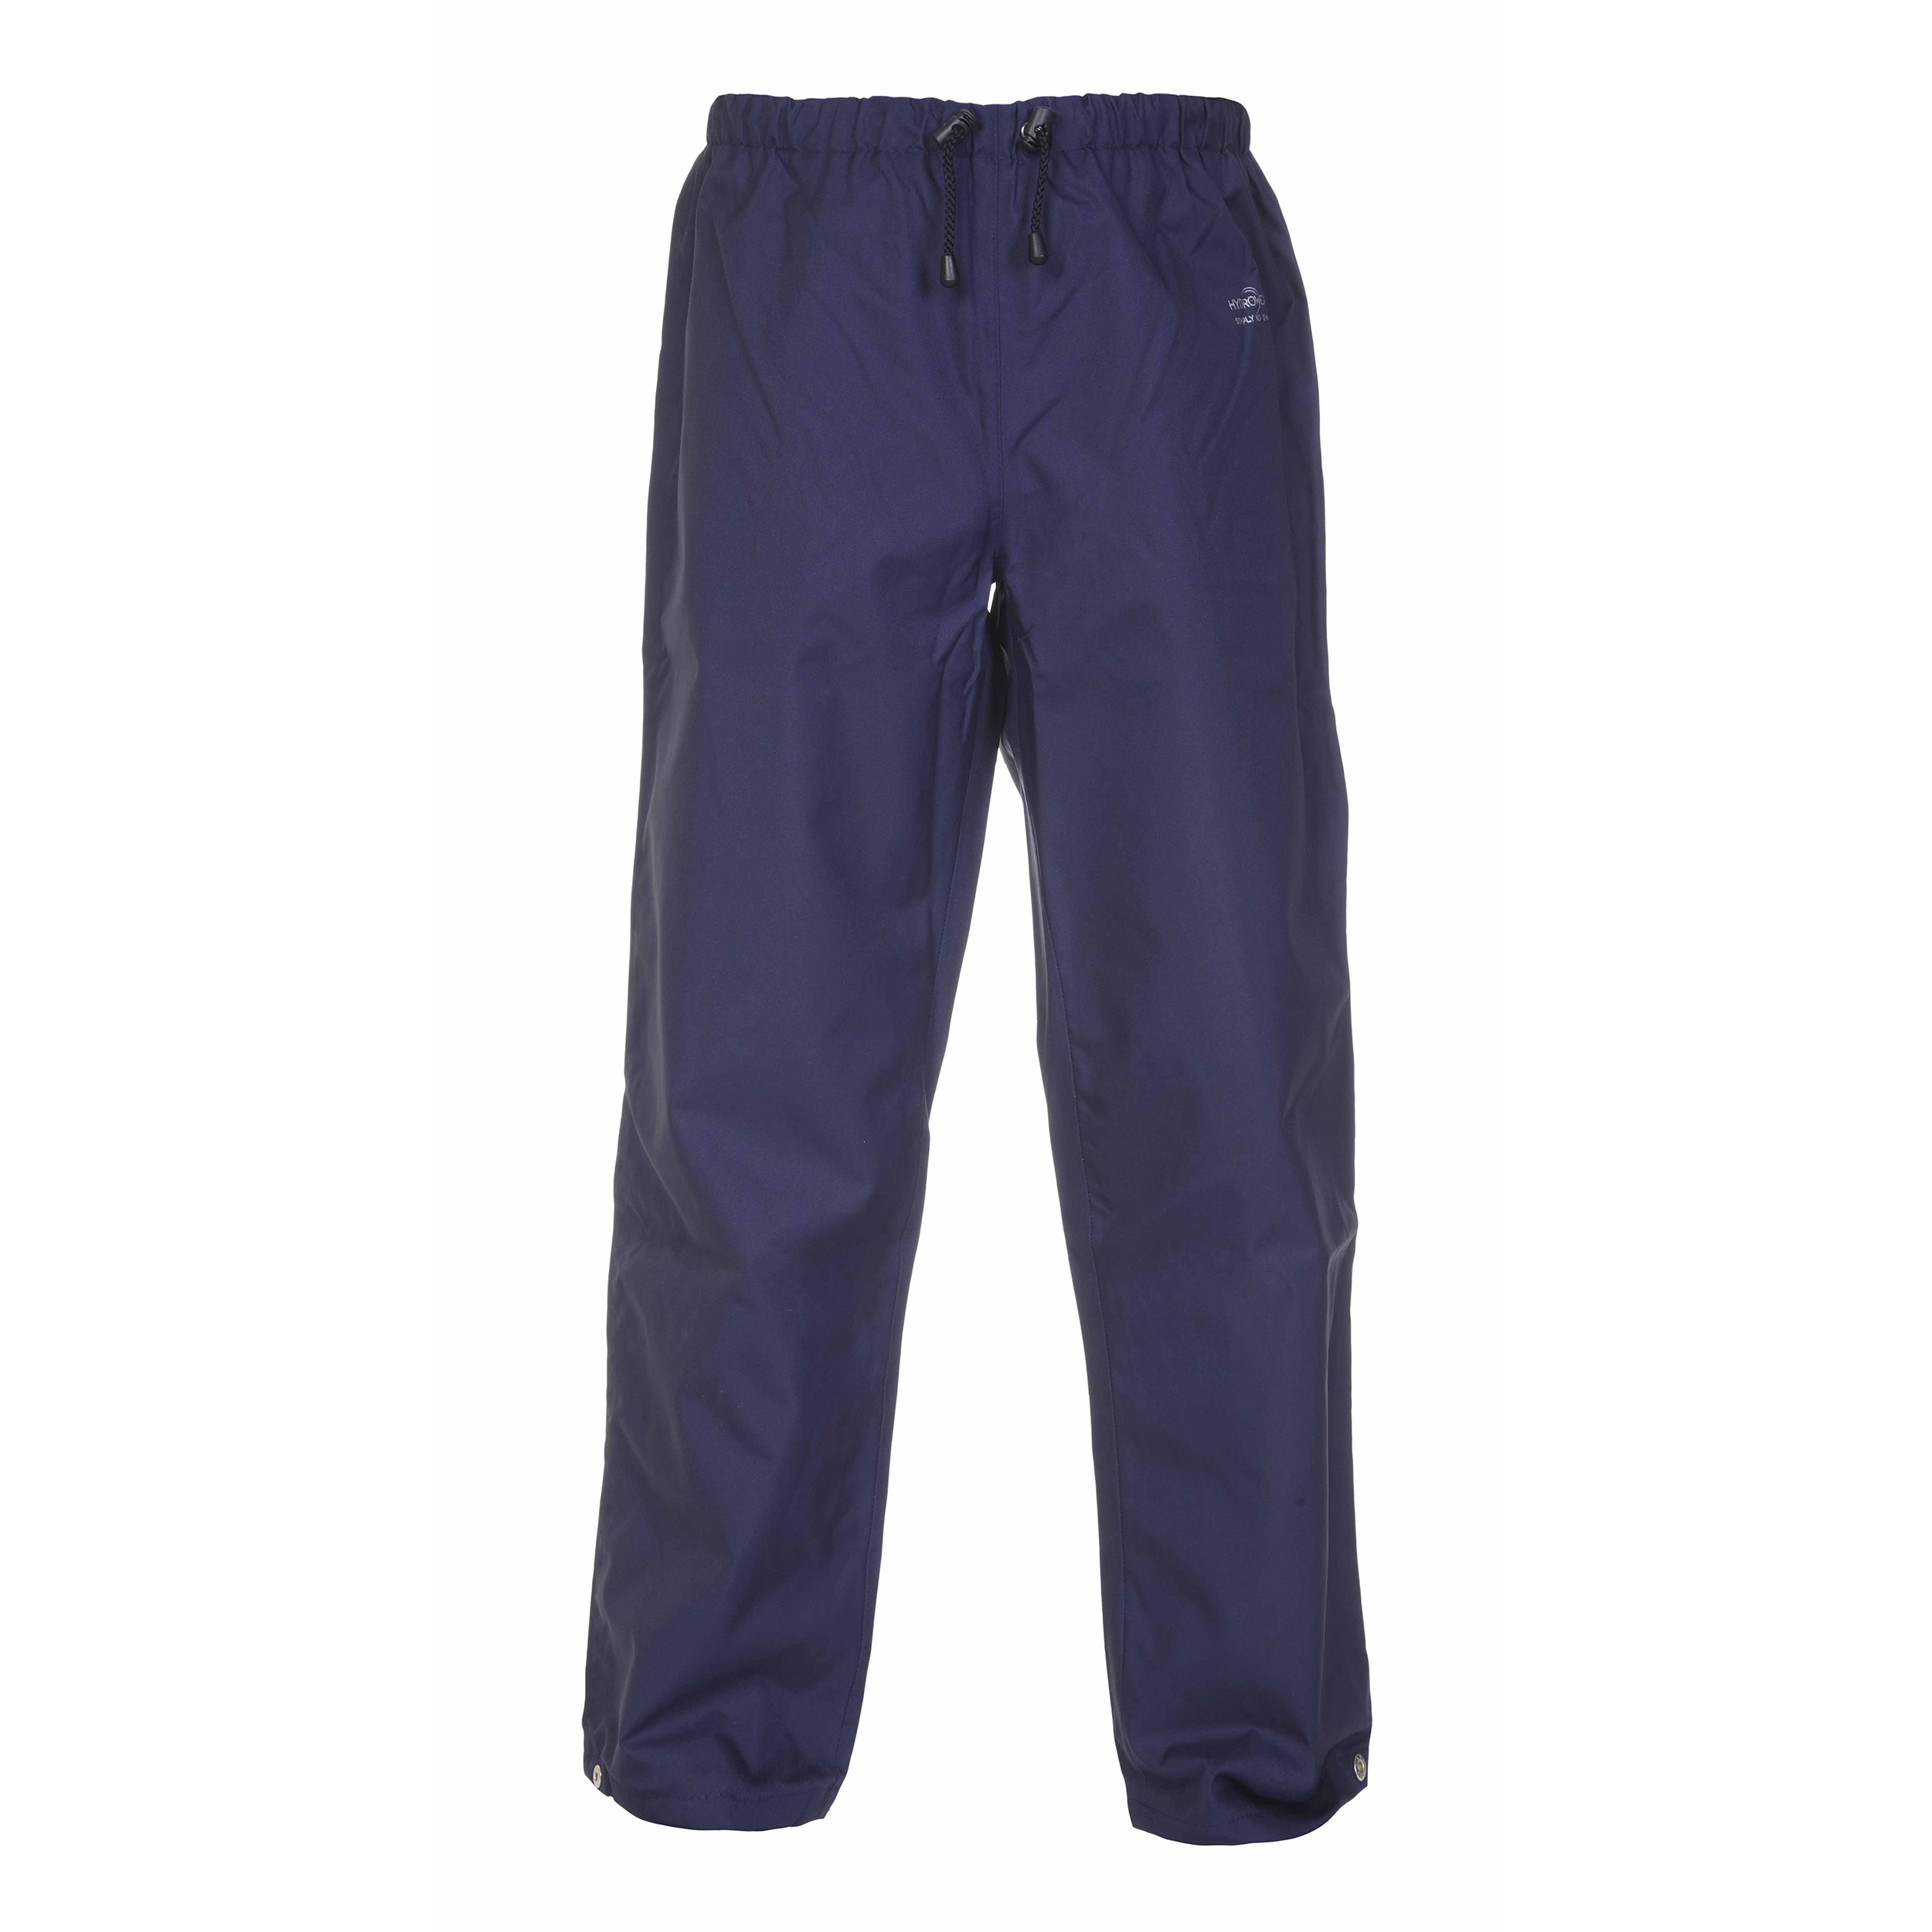 Mens slacks or trousers or shorts Hydowear Utrecht SNS Waterproof Trousers XL Navy Ref HYD072350NXL *Up to 3 Day Leadtime*